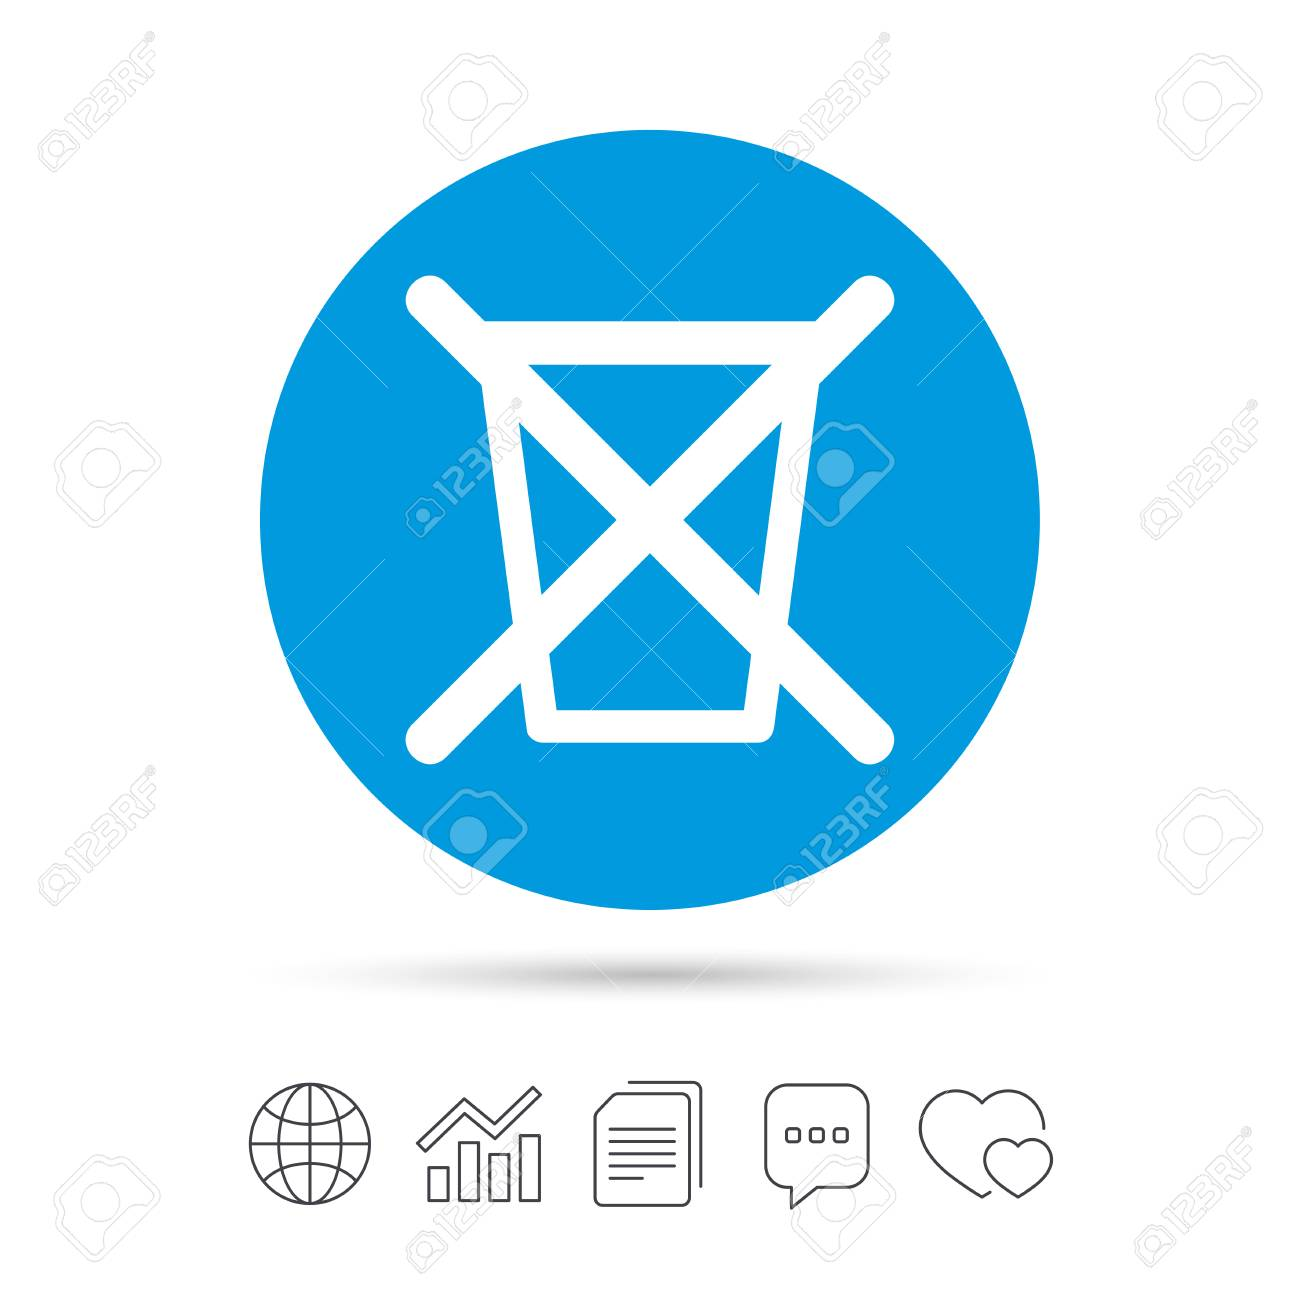 Do not throw in trash. Recycle bin sign icon. Copy files, chat speech bubble and chart web icons. Vector - 72644360